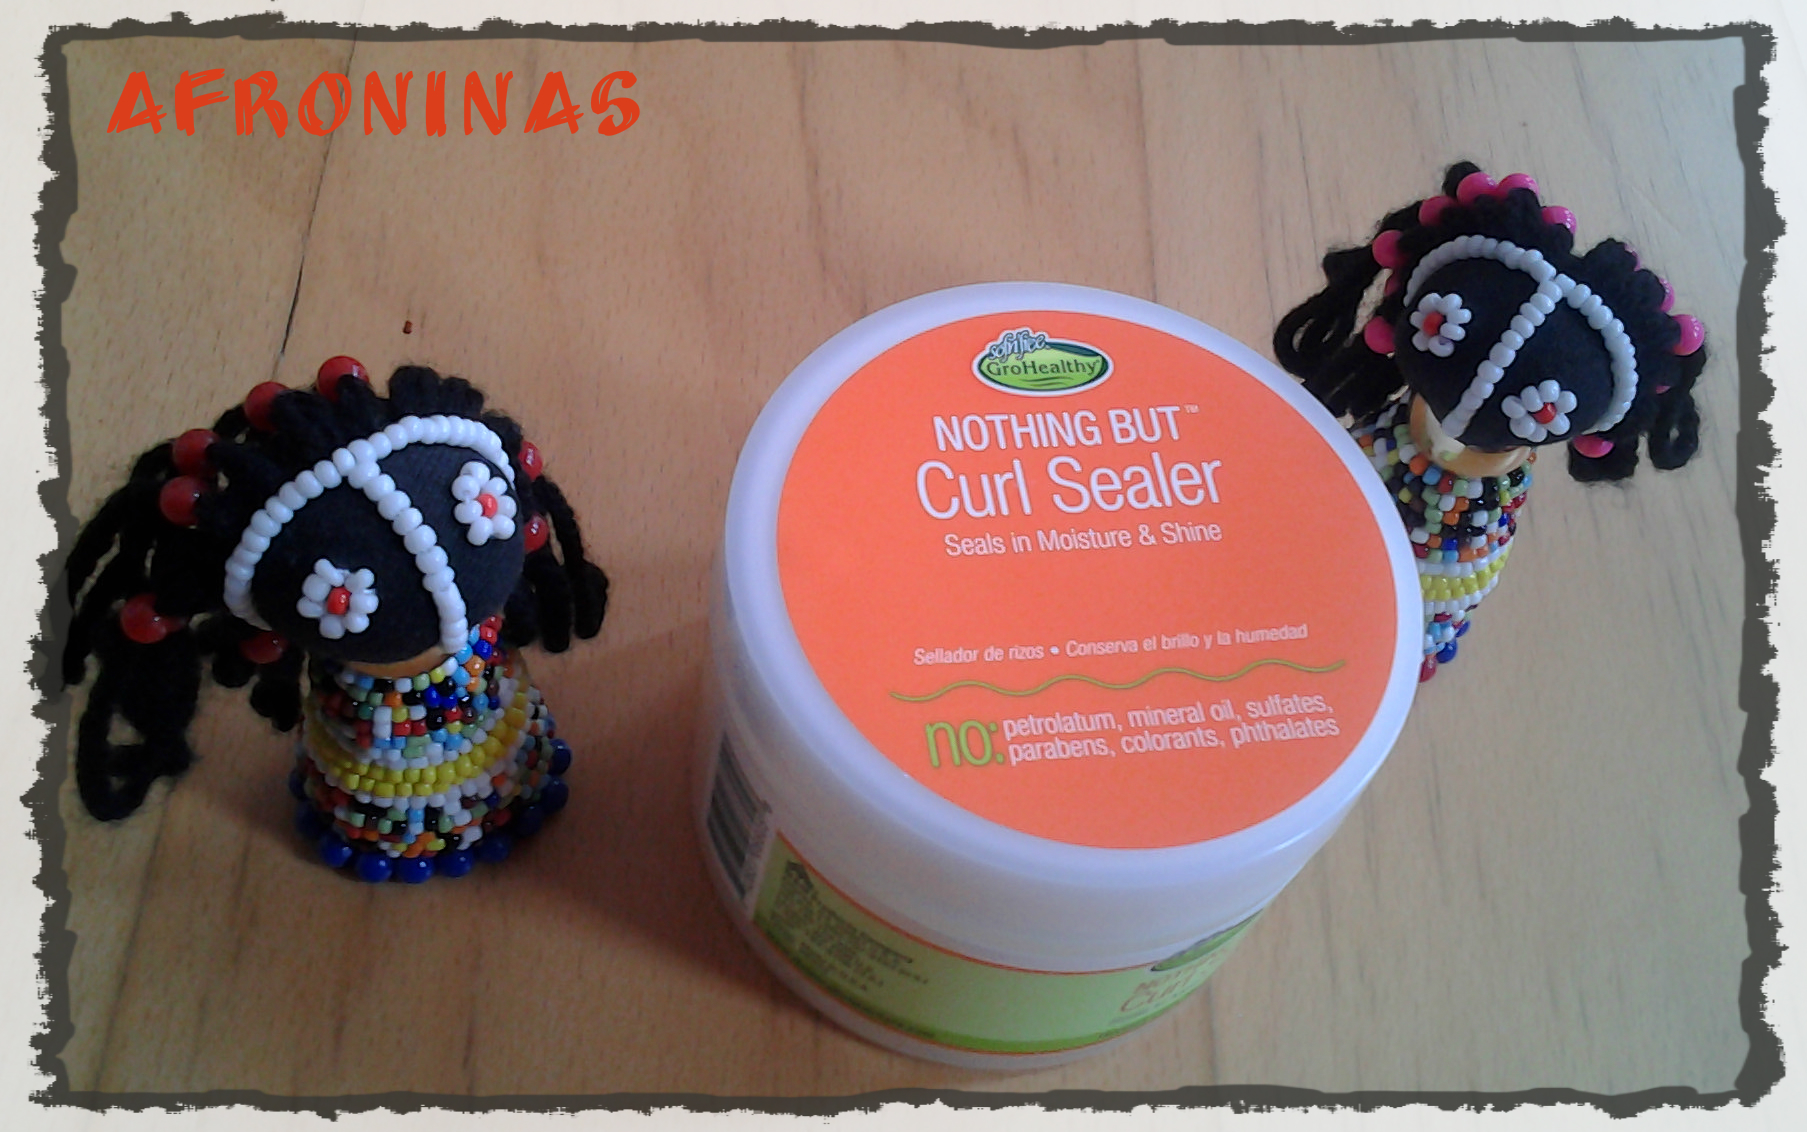 Photo: Nothing But Curl Sealer